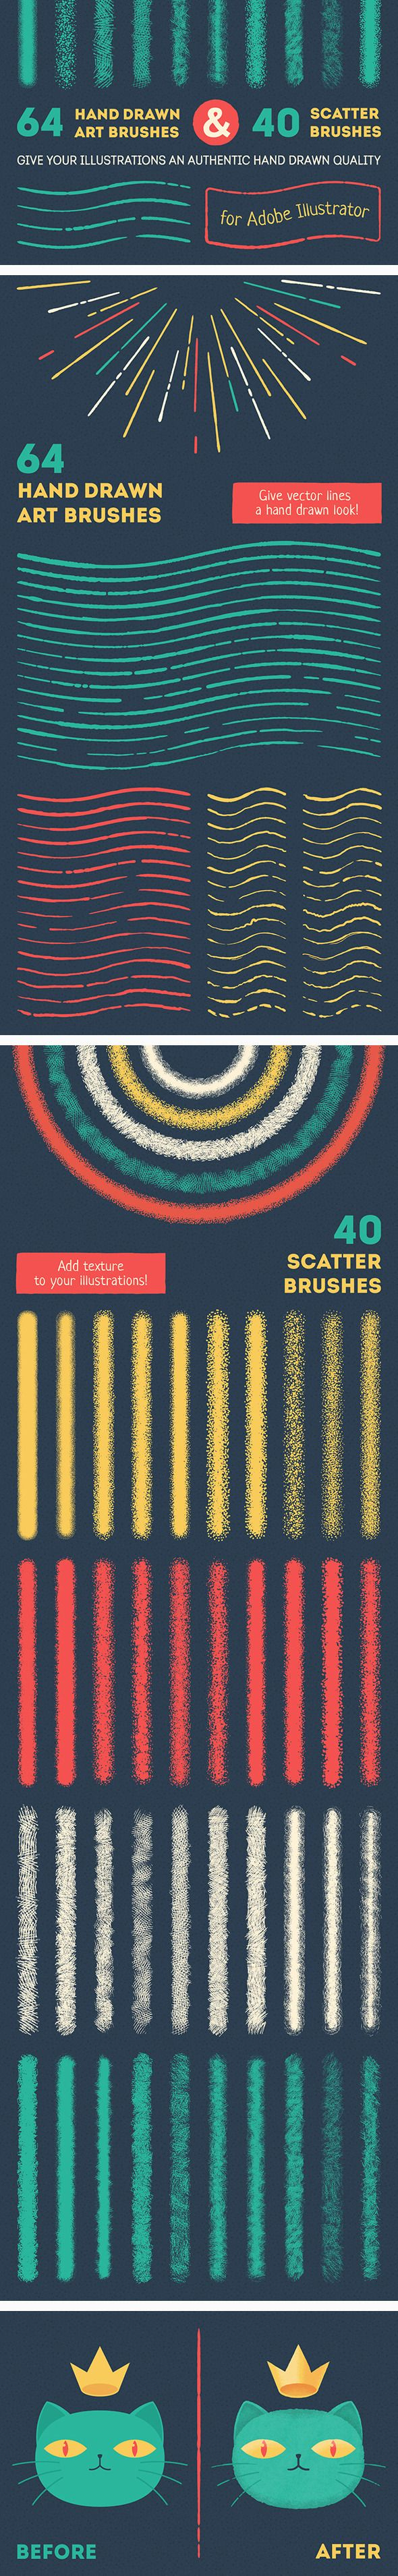 Vector Brush Set For Adobe Illustrator #design #ai Download: http://graphicriver.net/item/vector-brush-set/11130070?ref=ksioks